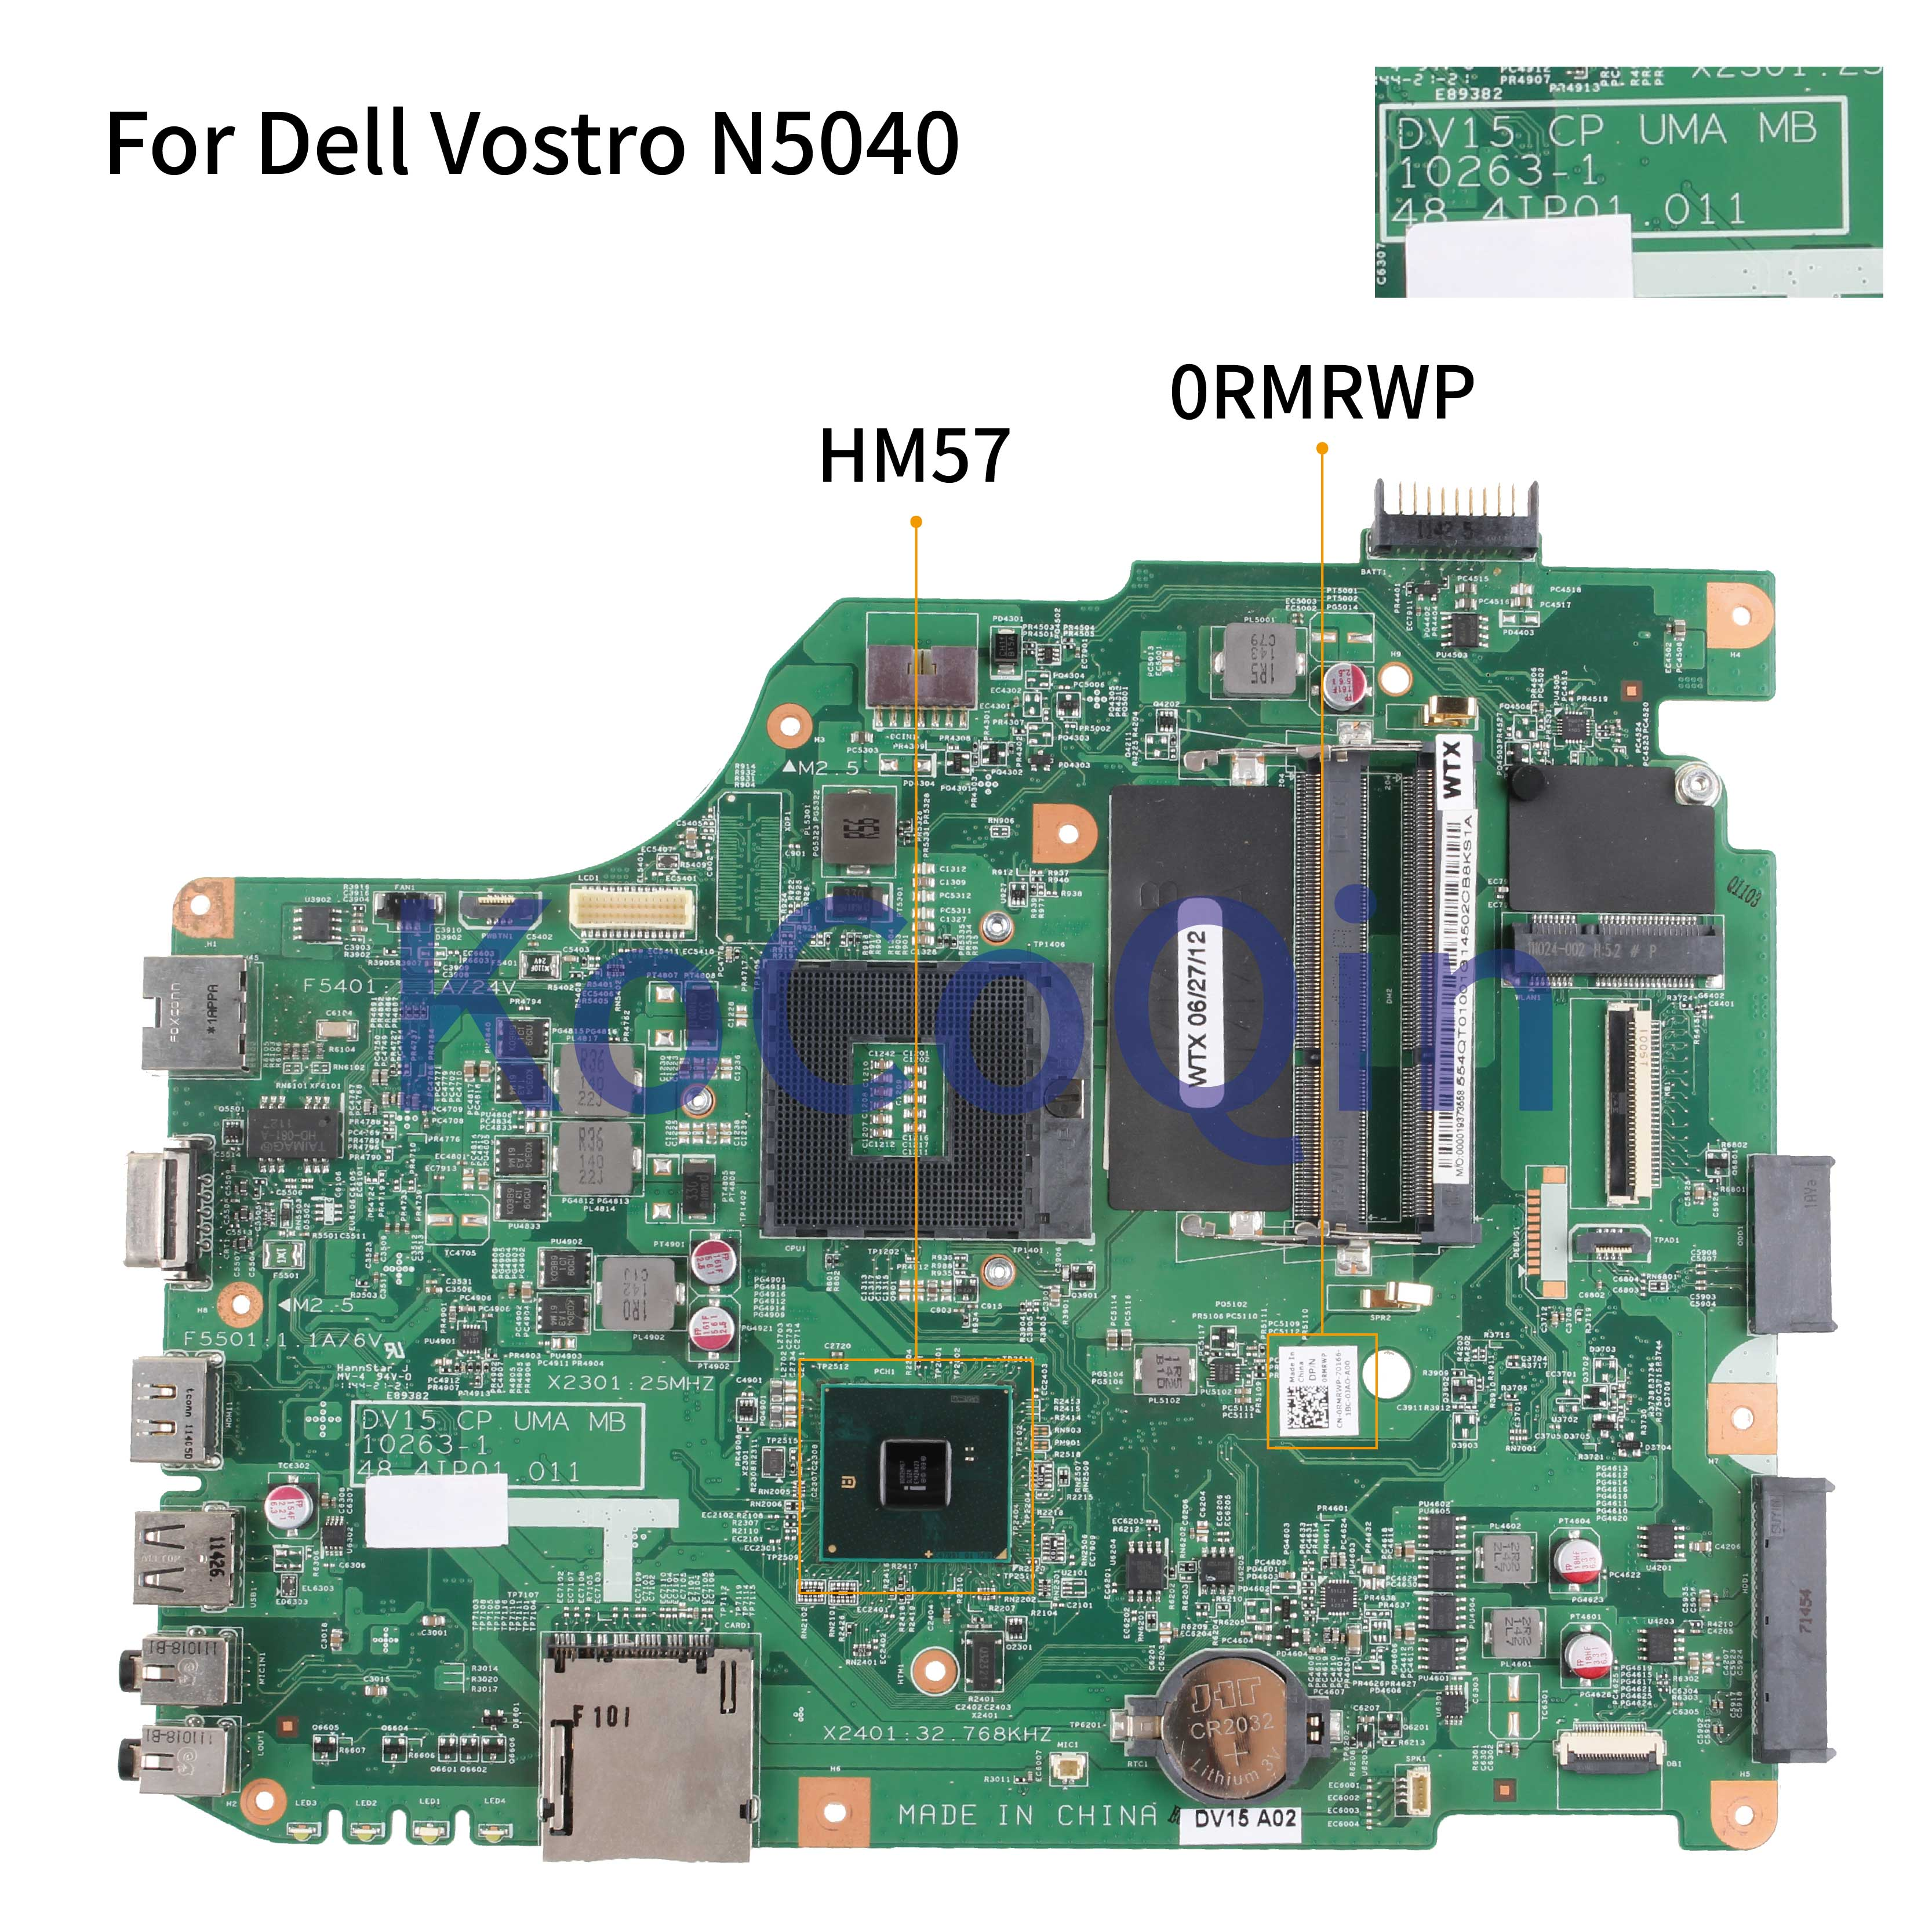 KoCoQin Laptop Motherboard For Dell Vostro 1540 V1540 15R N5040 HM57 Mainboard 0RMRWP CN-0RMRWP 10263-1 48.4IP01.011